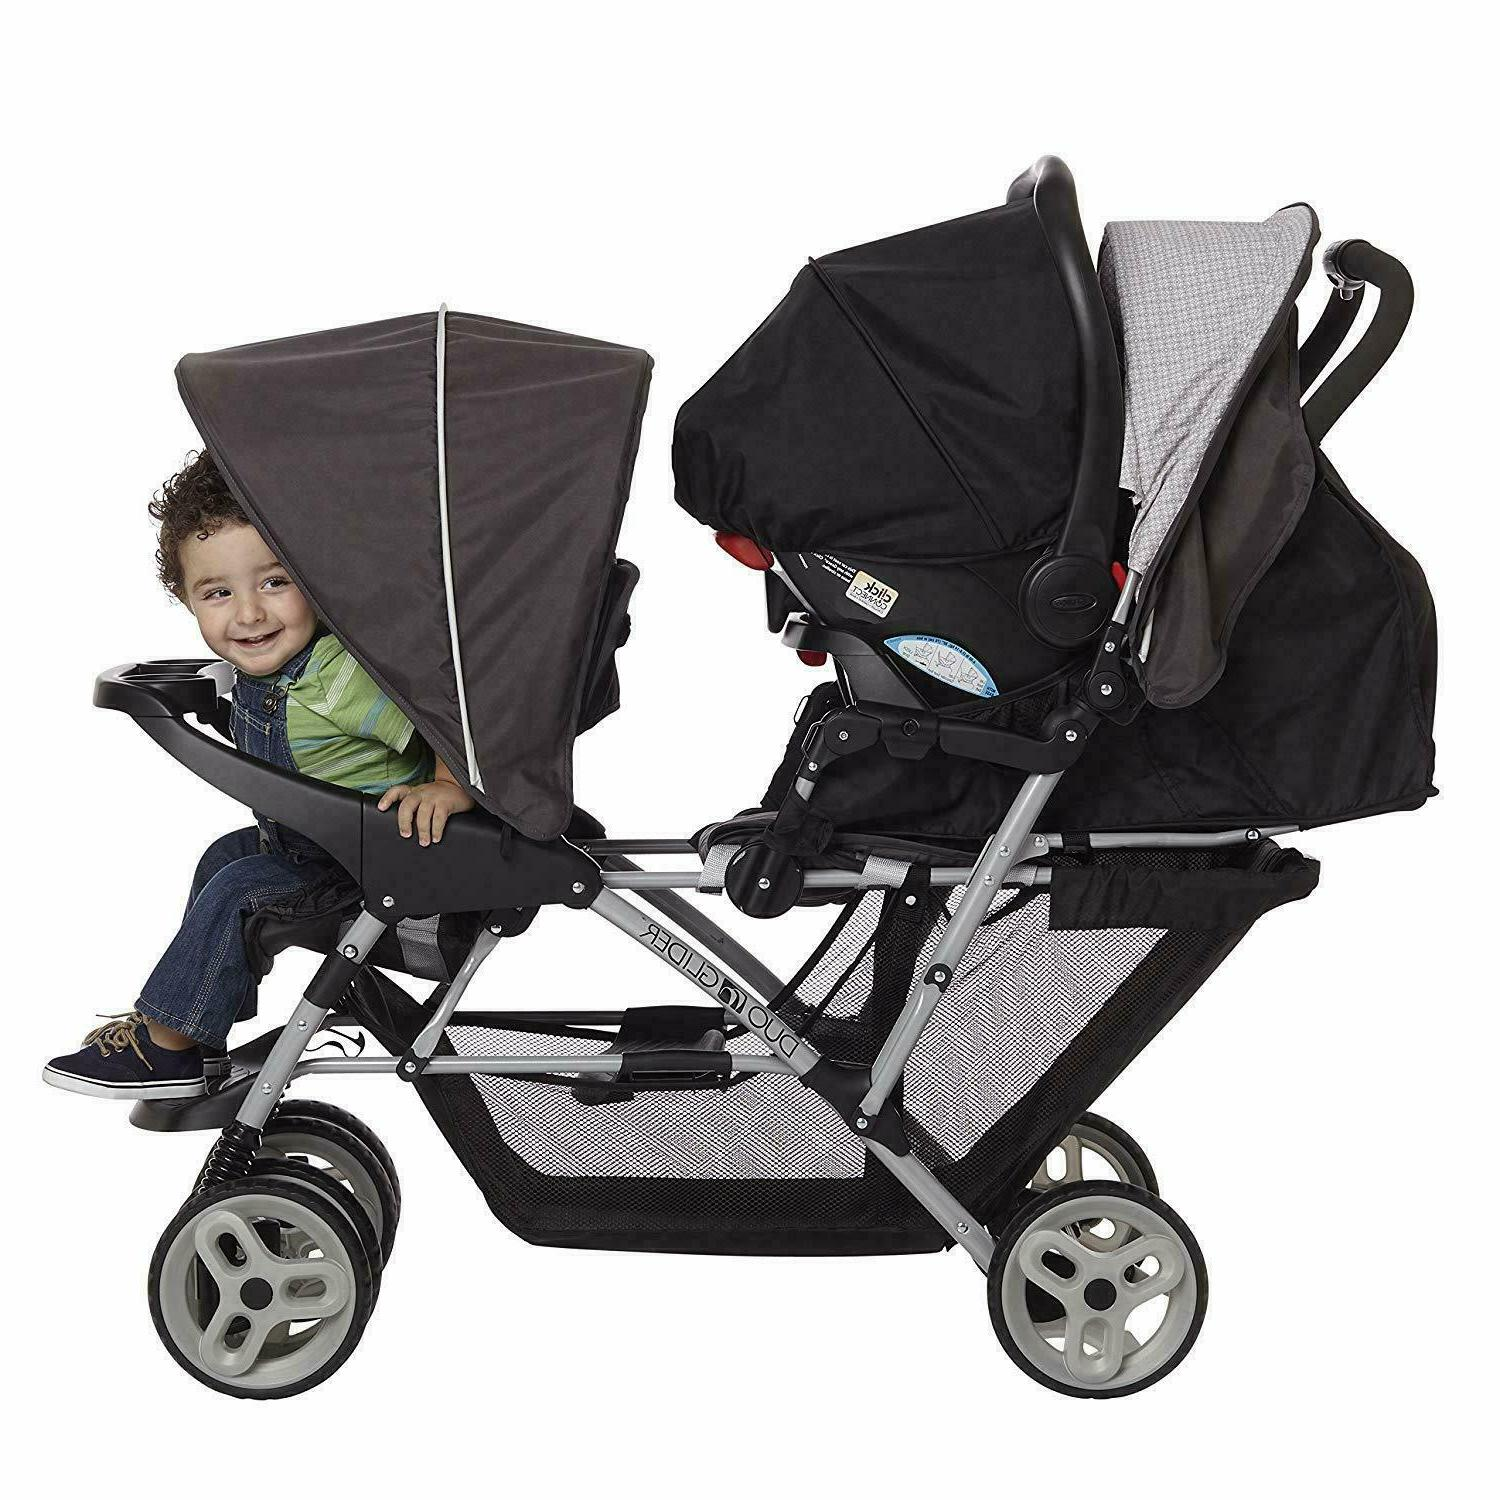 GRACO LIGHTWEIGHT DOUBLE STROLLER WITH SEATING